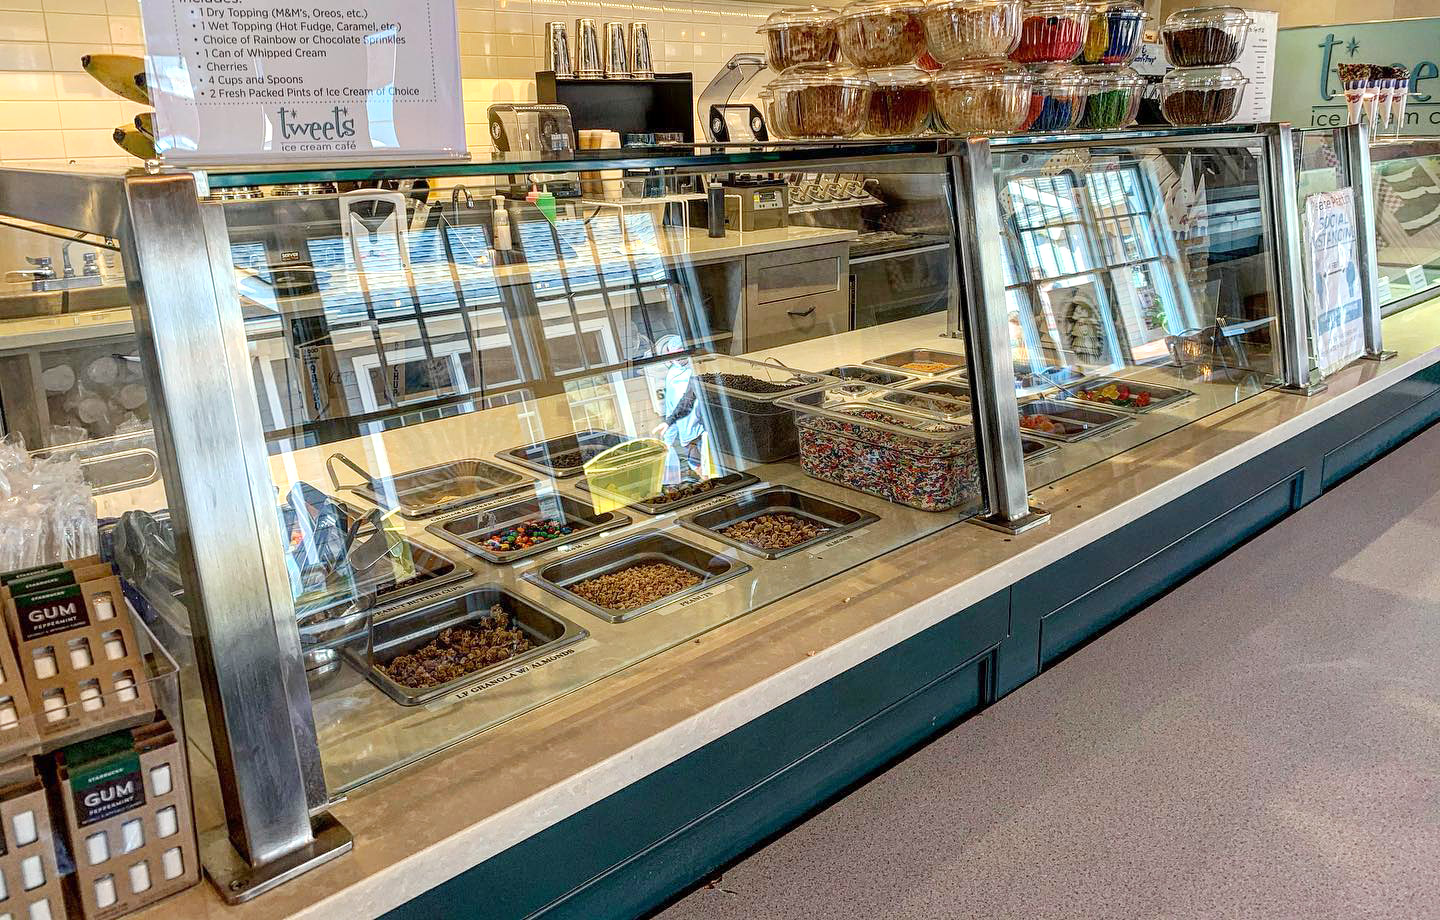 Stainless Steel Food Shield | Tweets Ice Cream Cafe - Wading River, NY